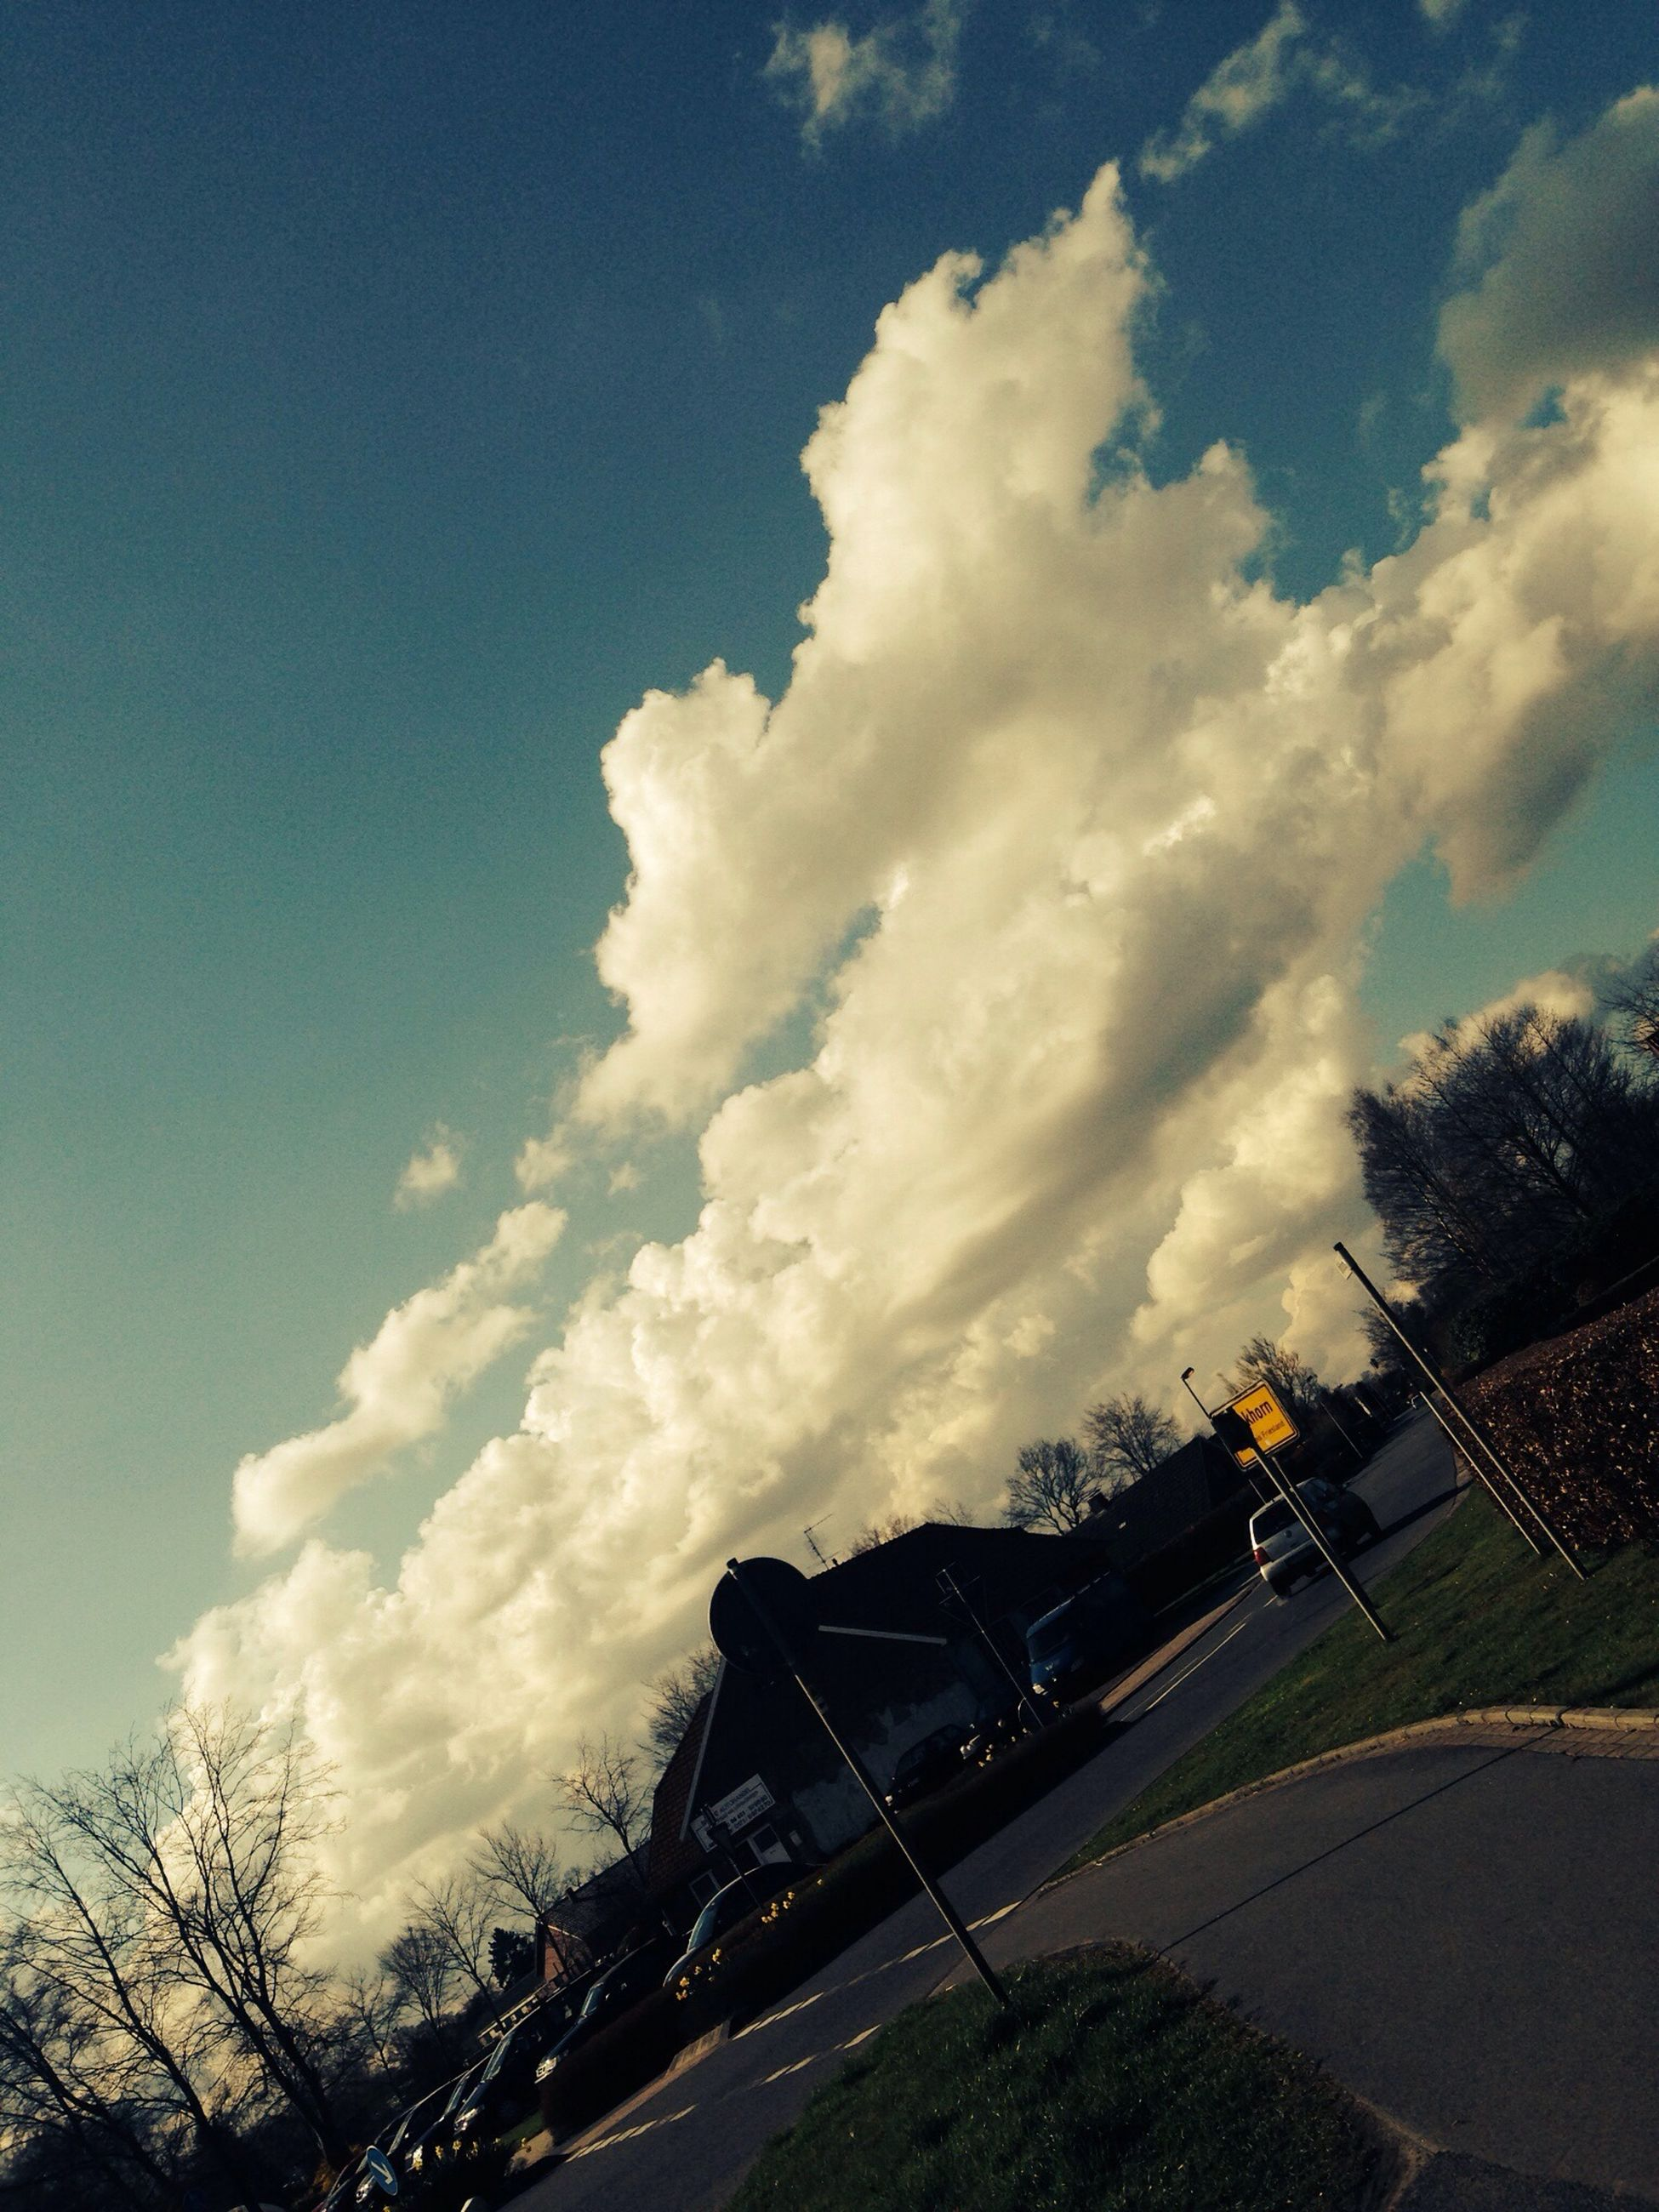 sky, cloud - sky, built structure, transportation, architecture, tree, road, land vehicle, cloud, building exterior, dusk, cloudy, low angle view, outdoors, car, mode of transport, nature, connection, no people, street